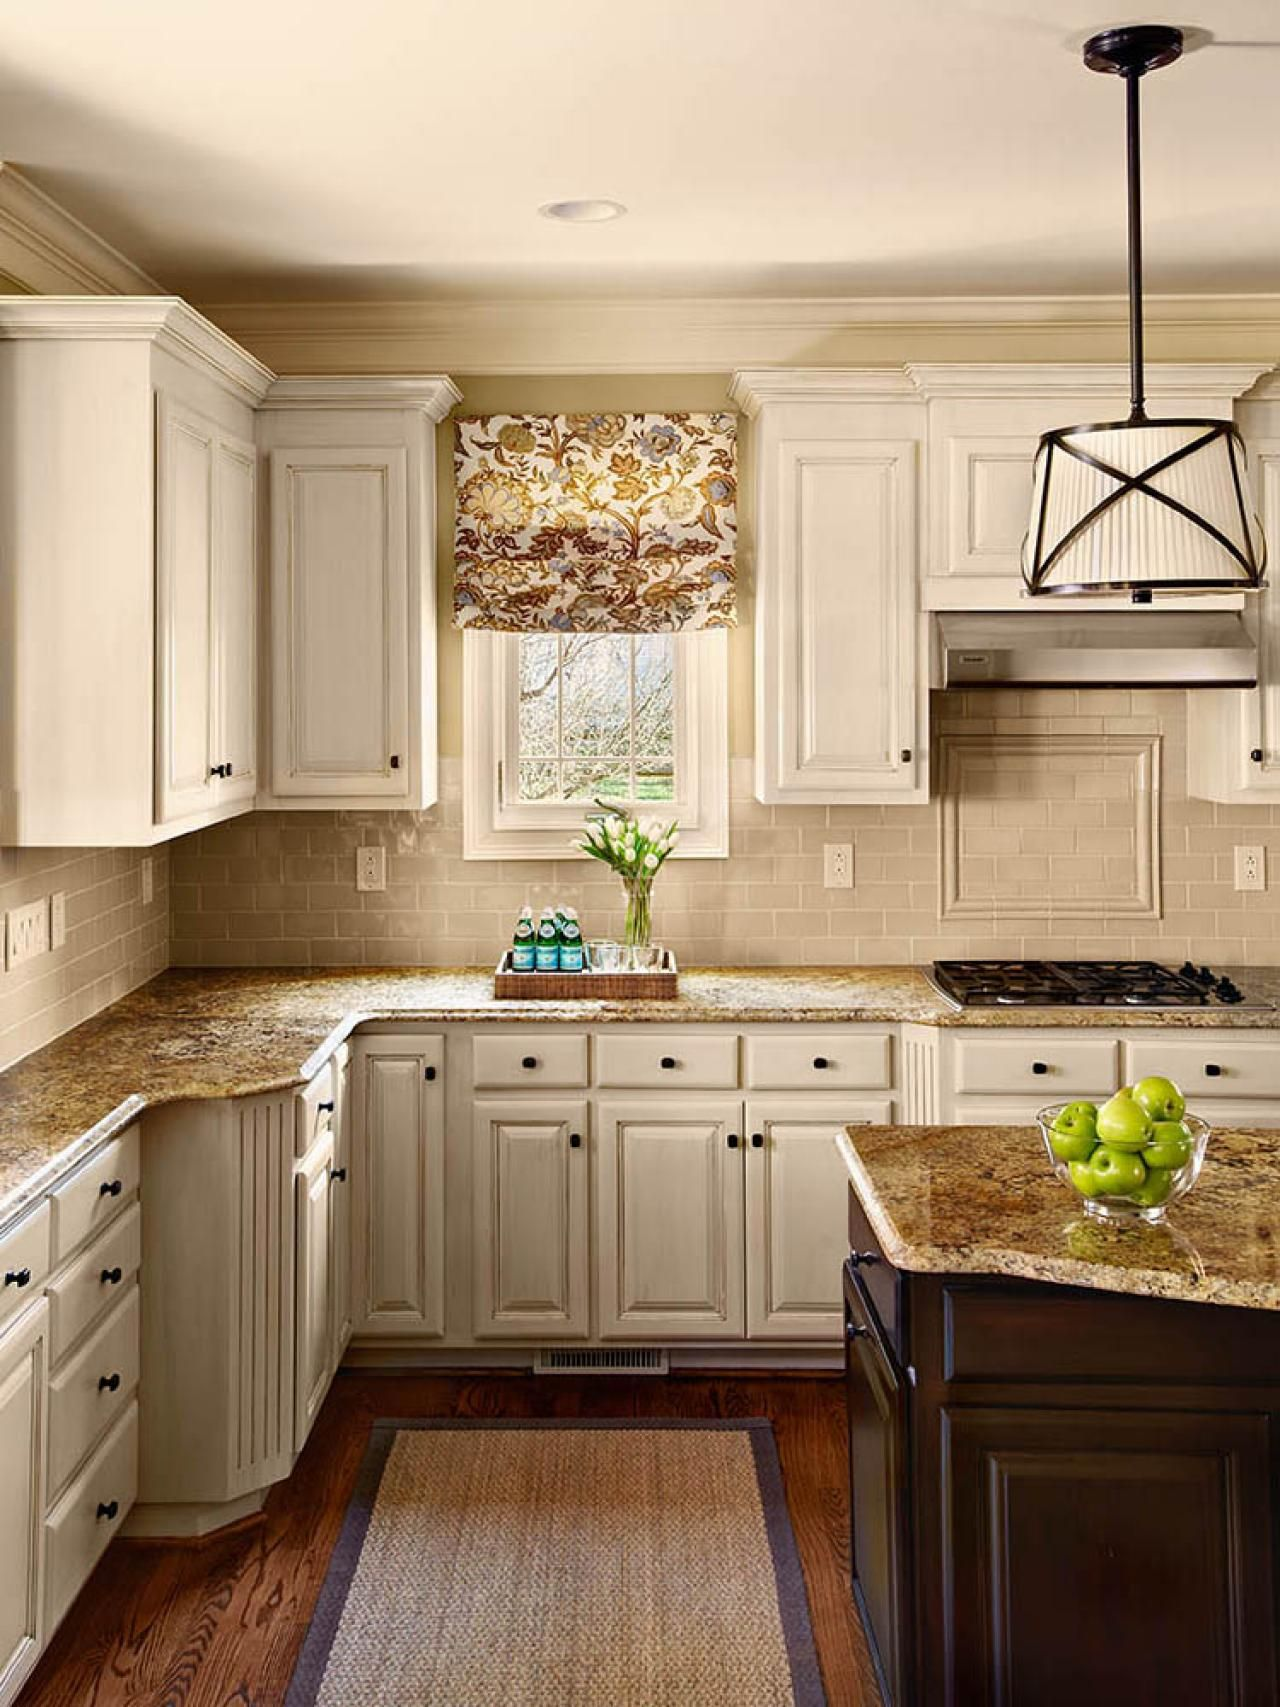 Refinishing Kitchen Cabinet Ideas Kitchen Cabinet Inspiration Hgtv Kitchens Kitchen Remodel